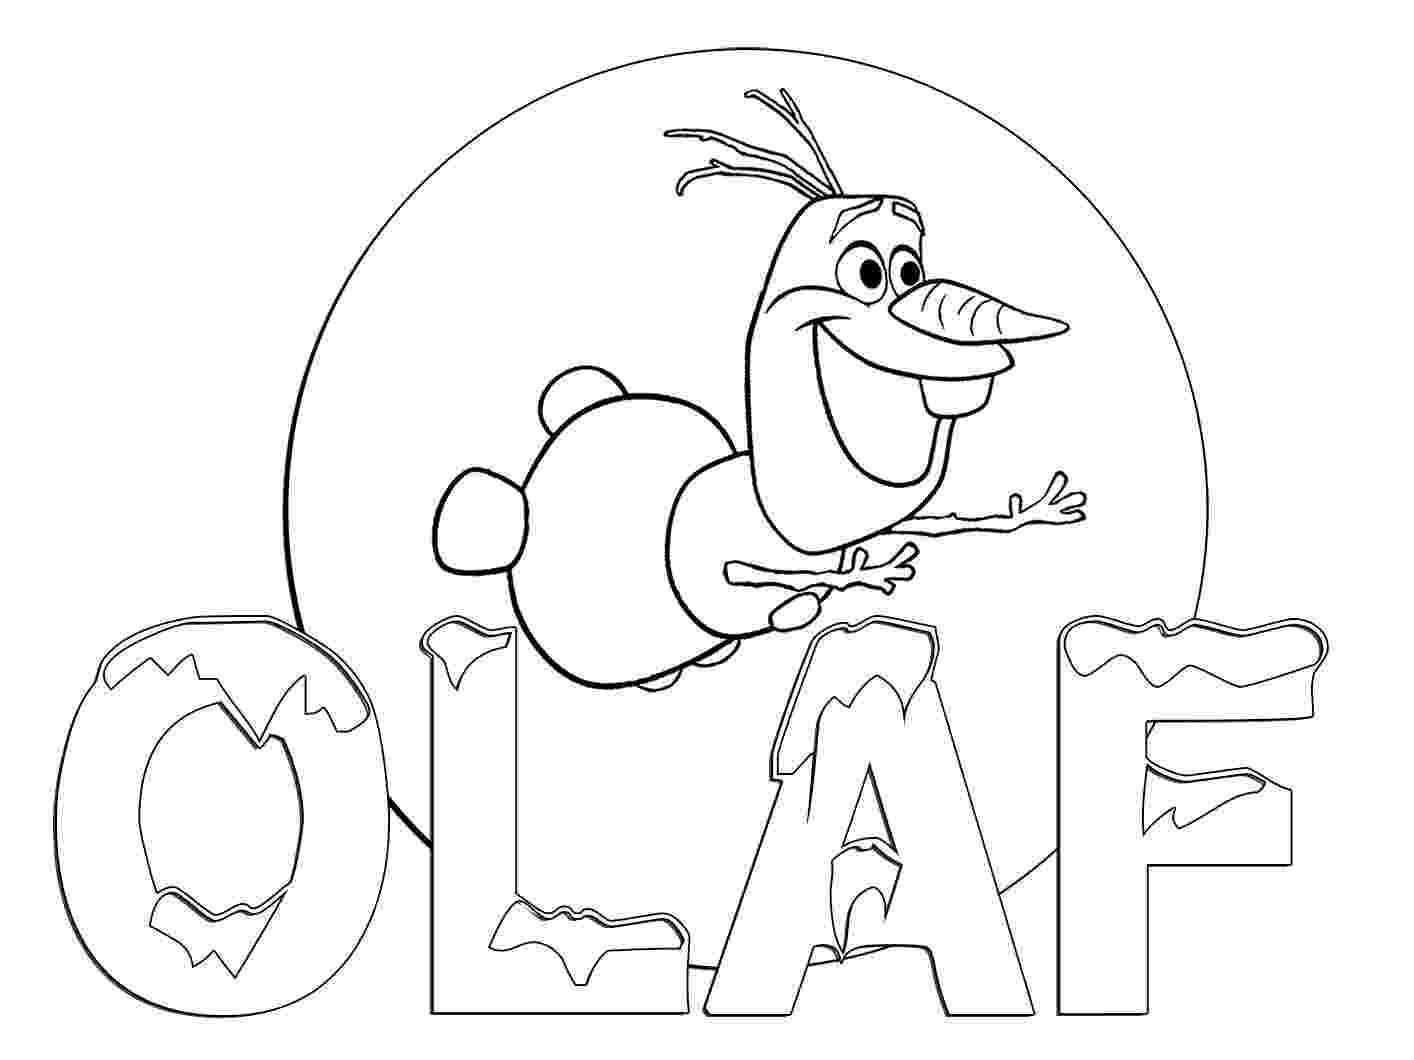 coloring pictures of olaf disney frozen olaf coloring pages getcoloringpagescom of pictures olaf coloring